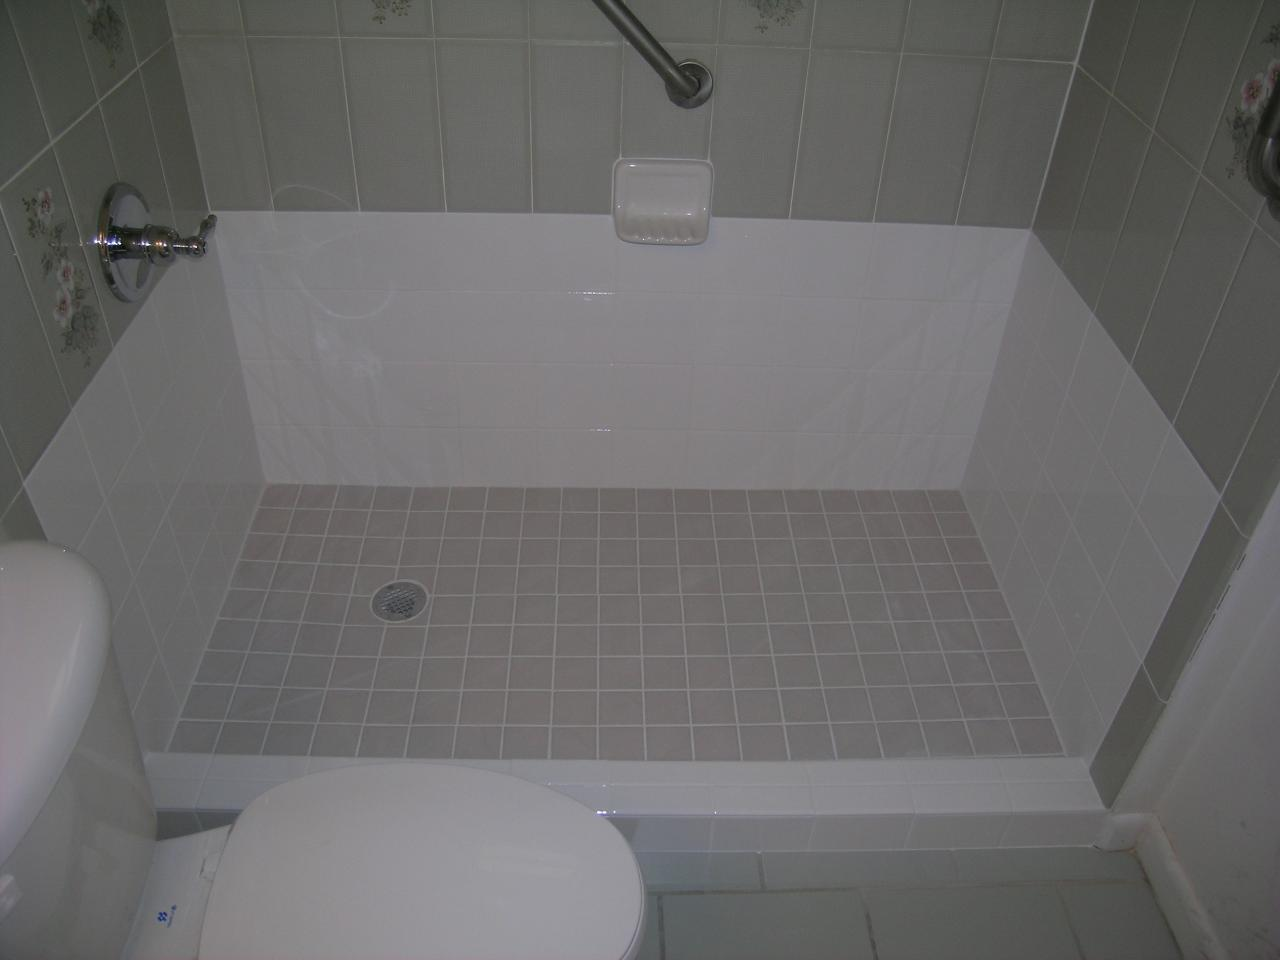 Economy Tub To Shower Conversion, Ready To Use In Less Then 48 Hours.